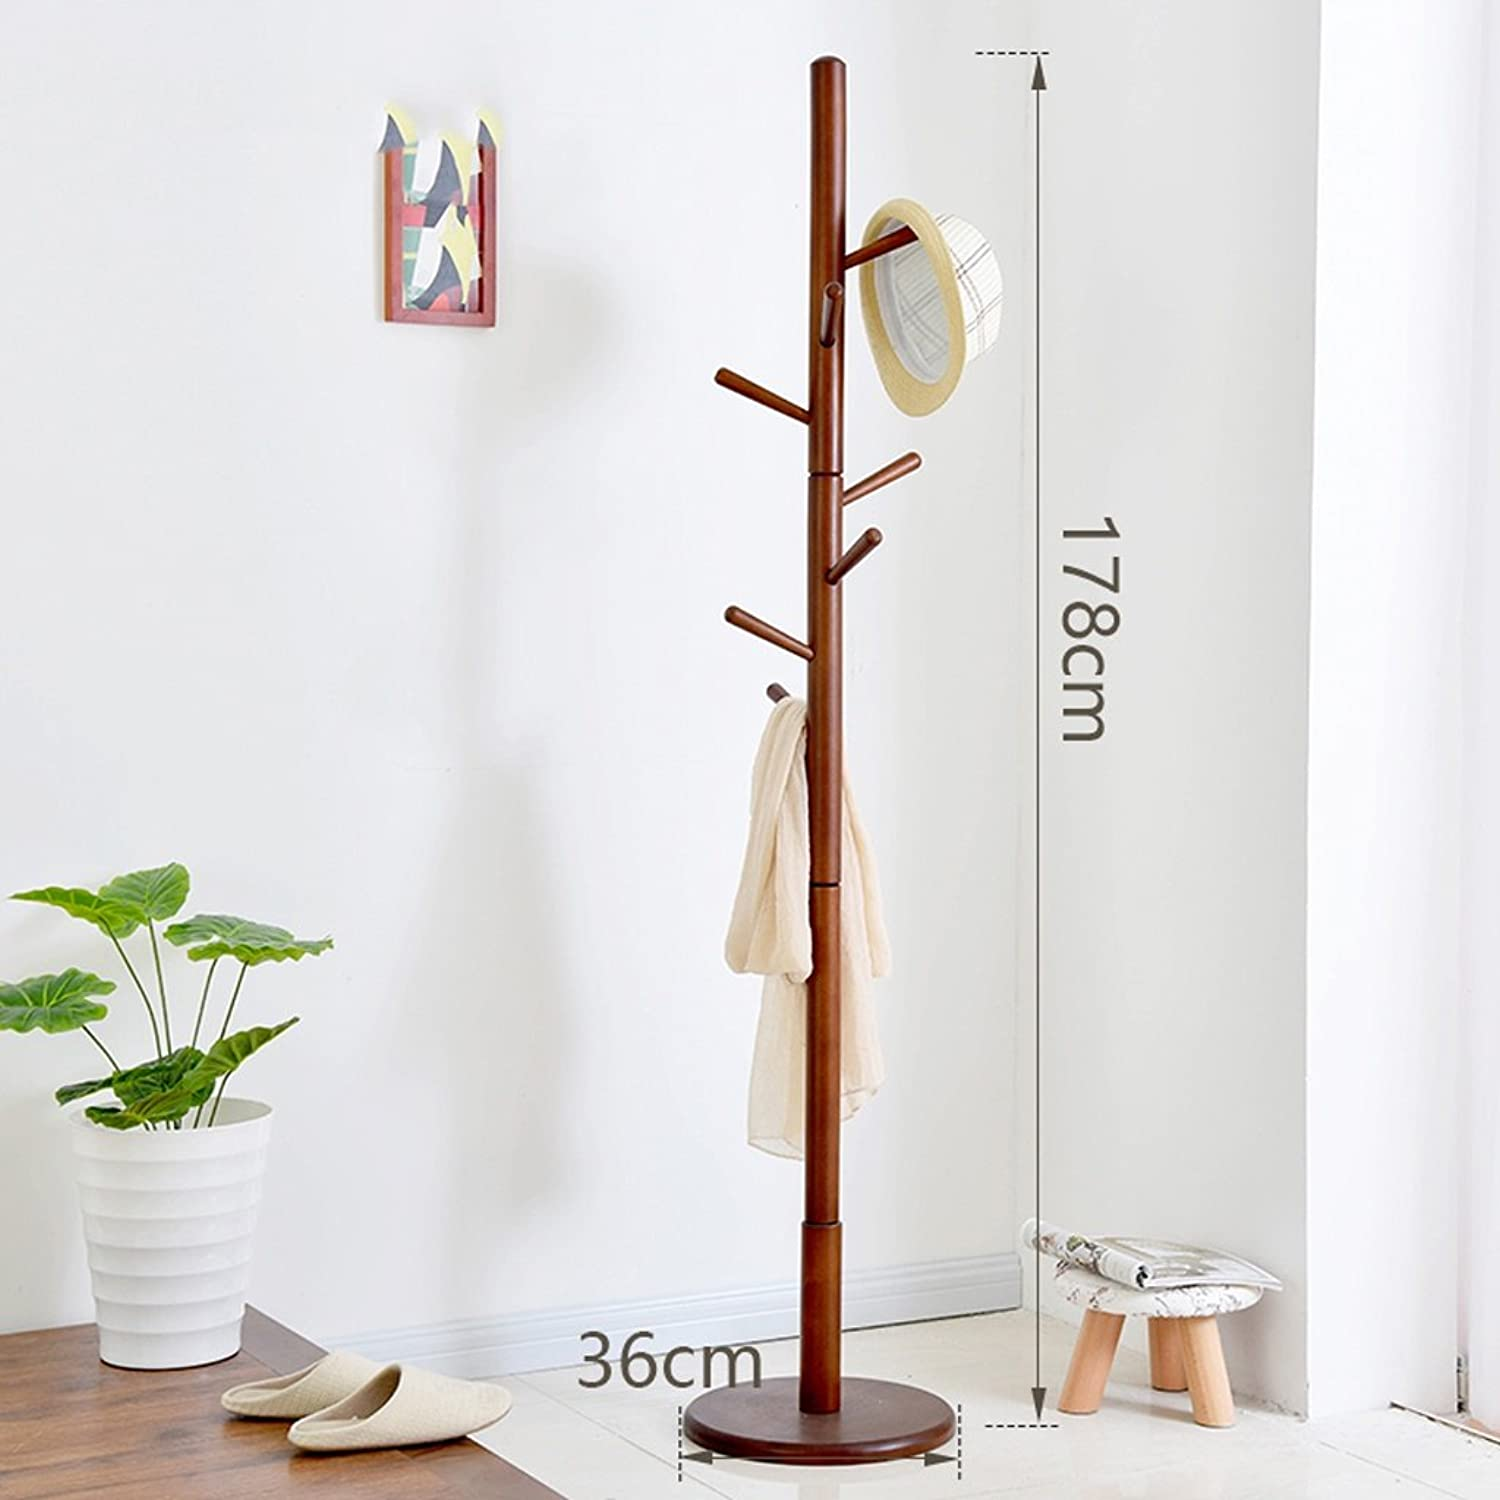 Jia Jia- Coat Rack - European Creative Simple Coat Rack, Floor Hangers, Bedroom, Hall Solid Wood Hangers Modern Coat Rack (color   D)